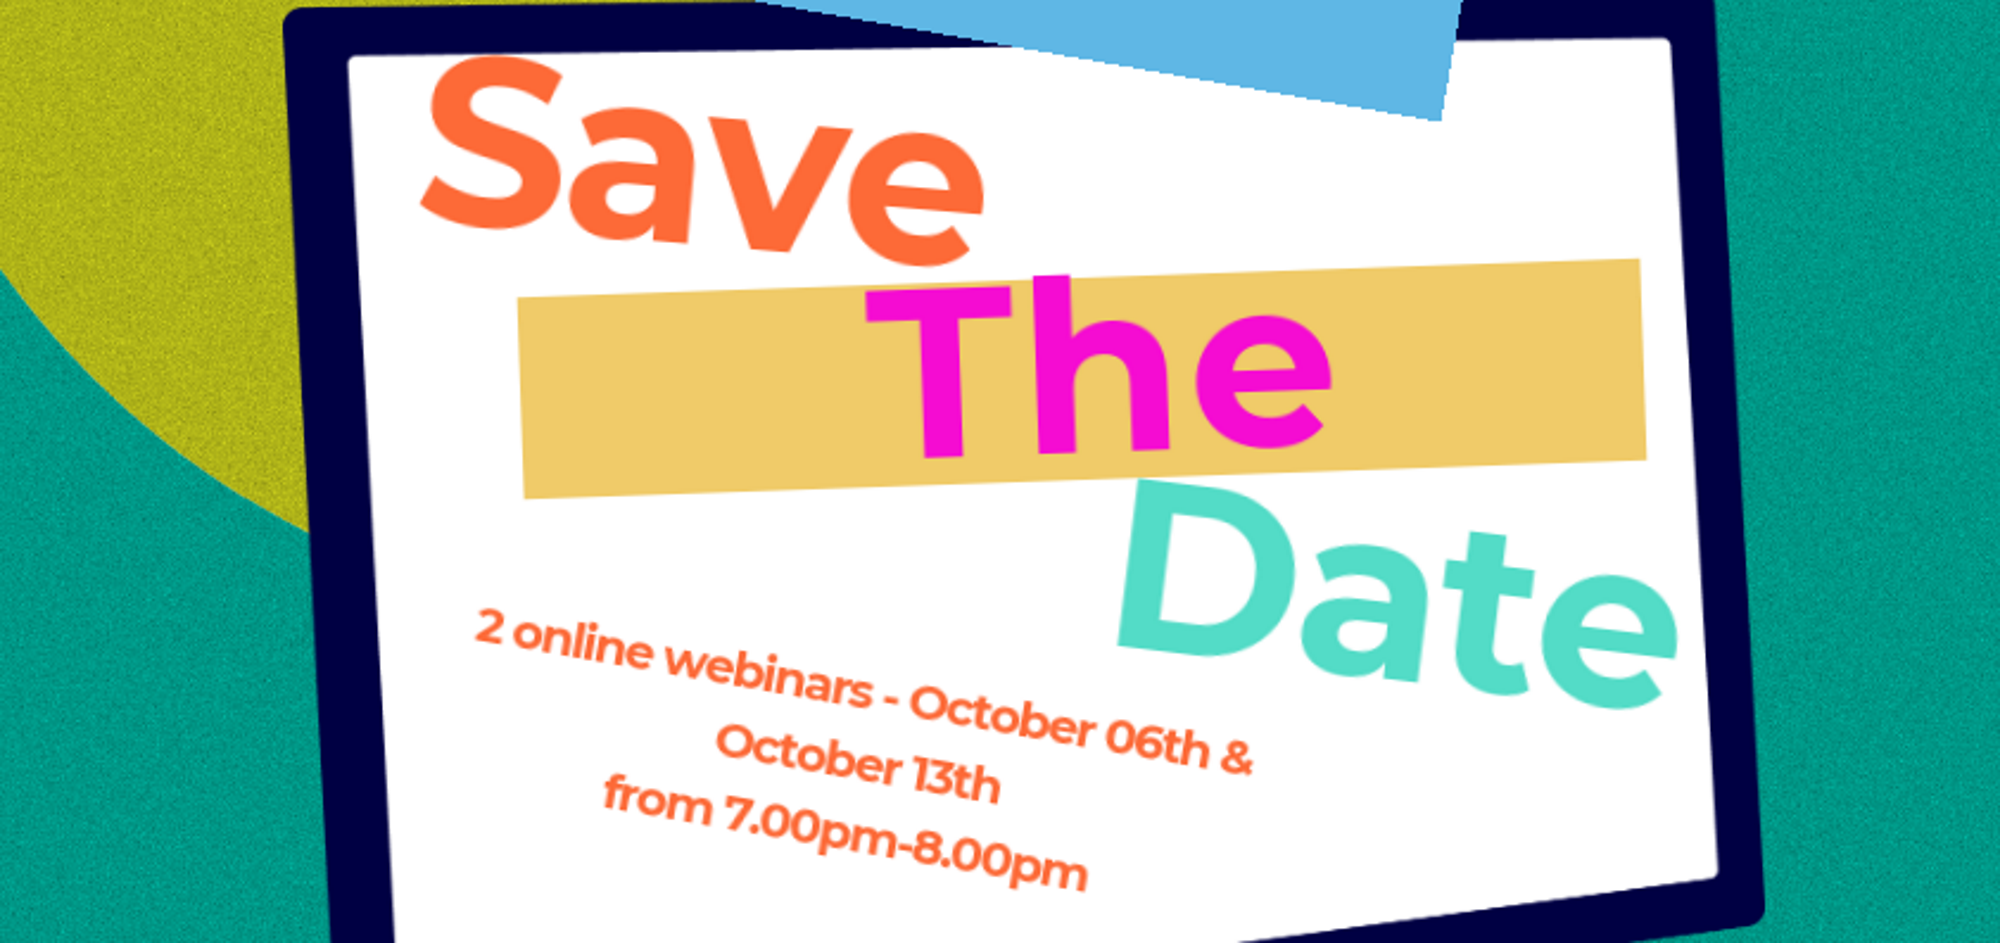 https://www.etbi.ie/wp-content/uploads/2021/09/210914Save-the-date.png